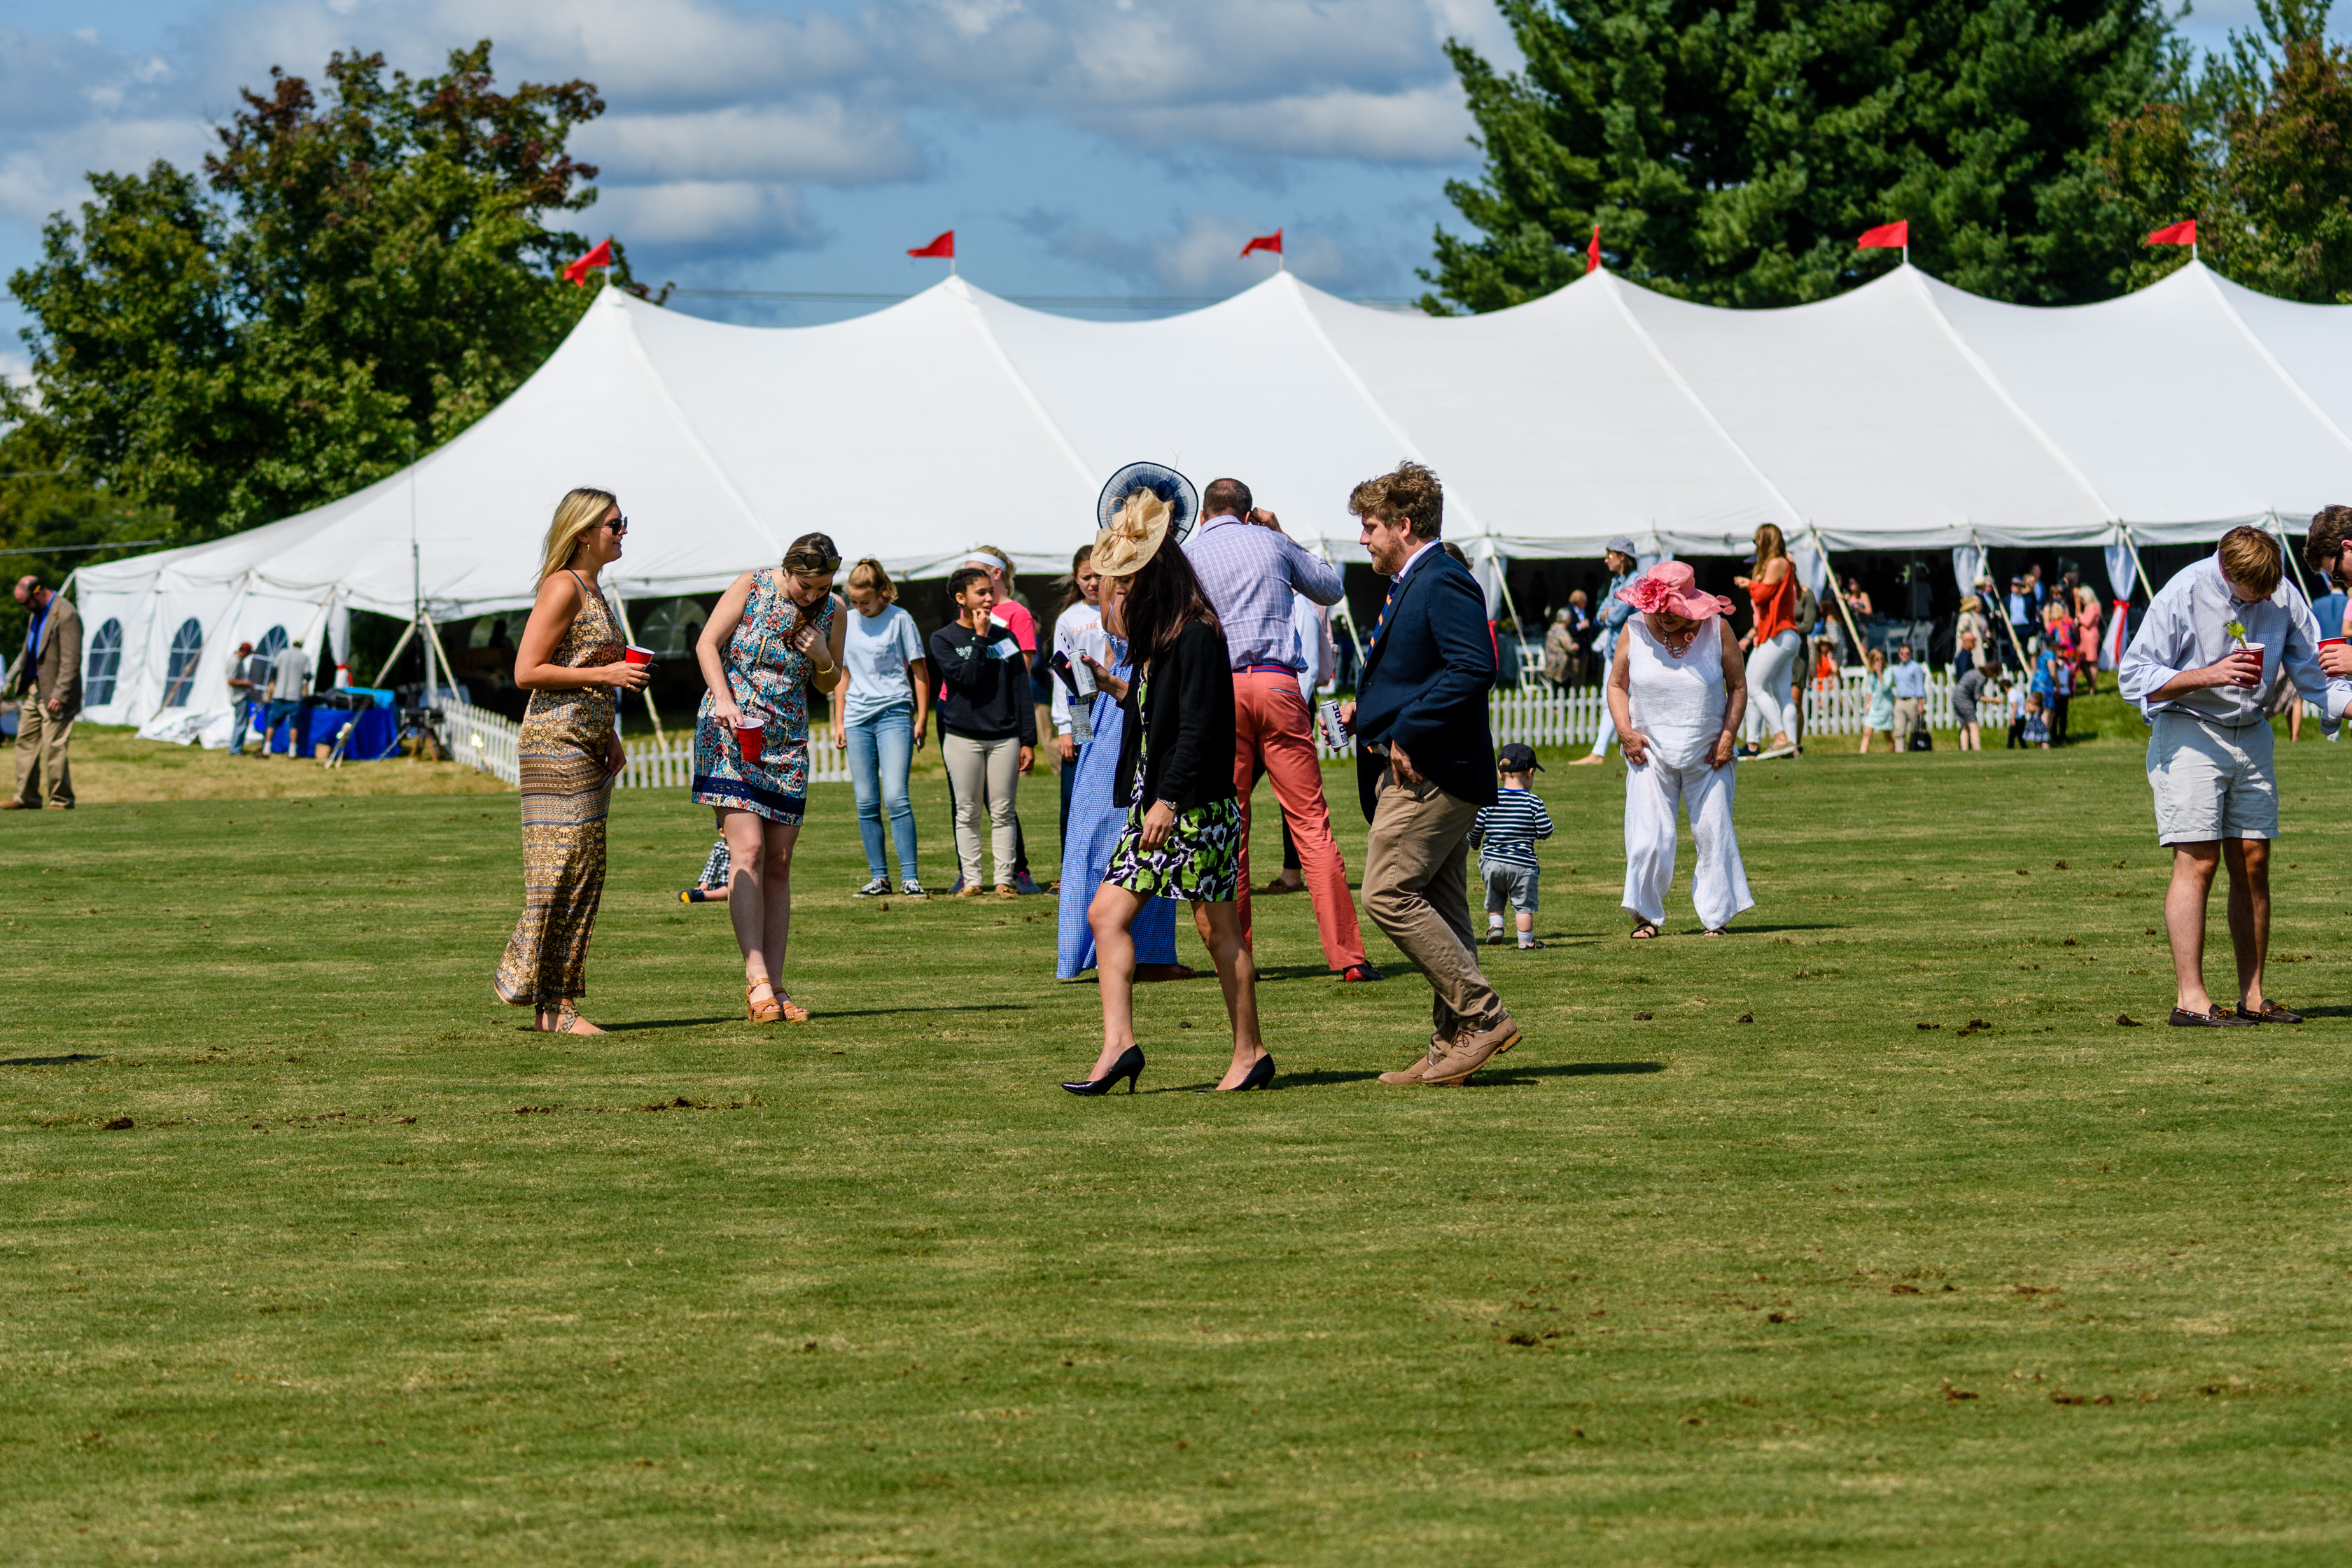 NSLM Polo Classic Divot Stomp. Photo by Middleburg Photo